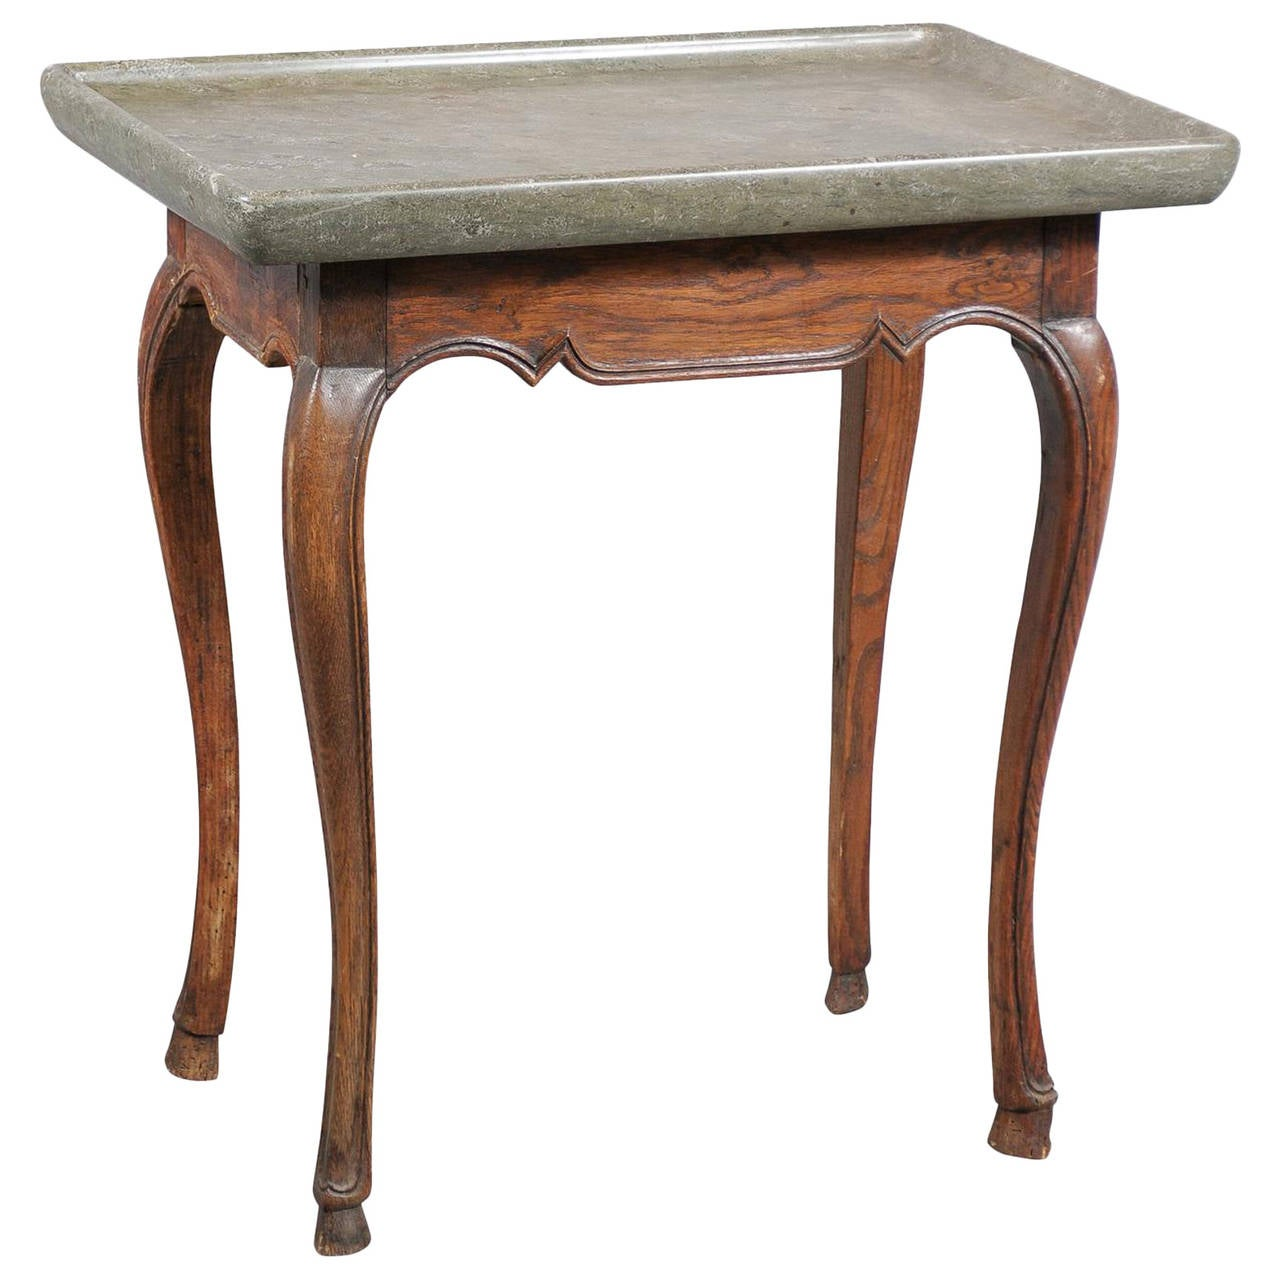 18th century swedish oak table with stone top at 1stdibs - Archives departementales 33 tables decennales ...